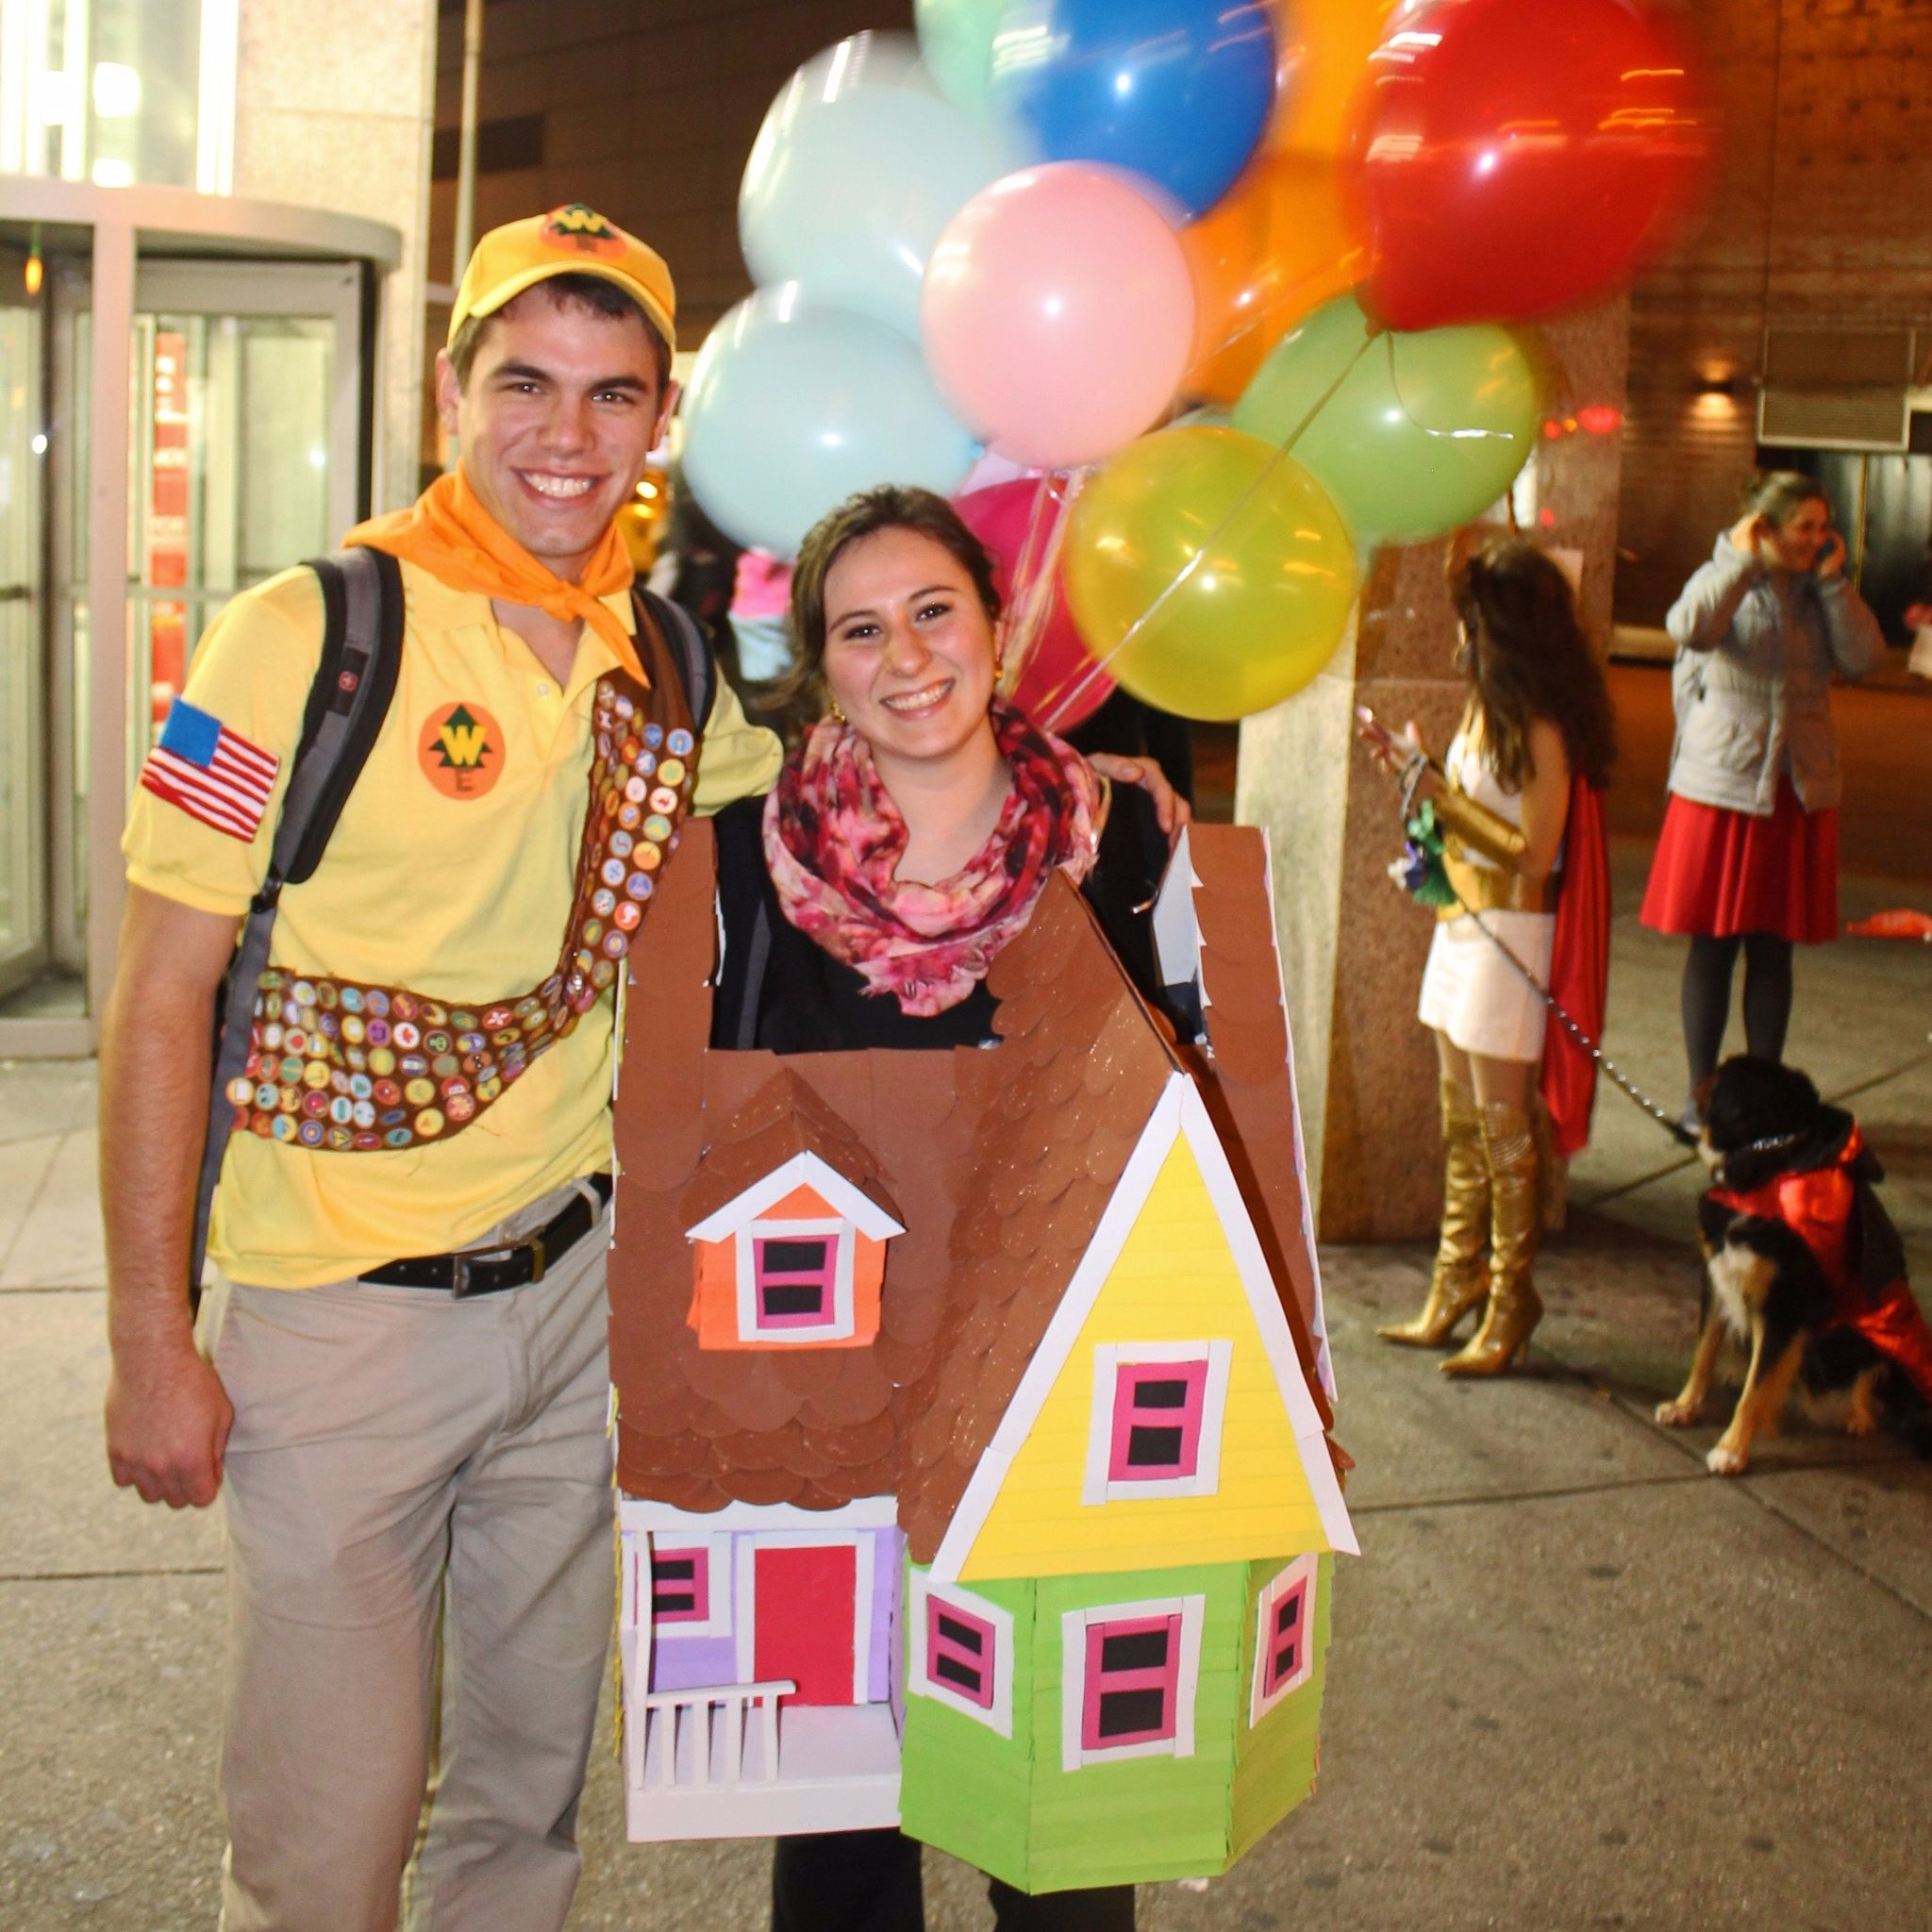 10 Attractive Clever Halloween Costume Ideas Couples cheap diy couples halloween costumes popsugar smart living 33